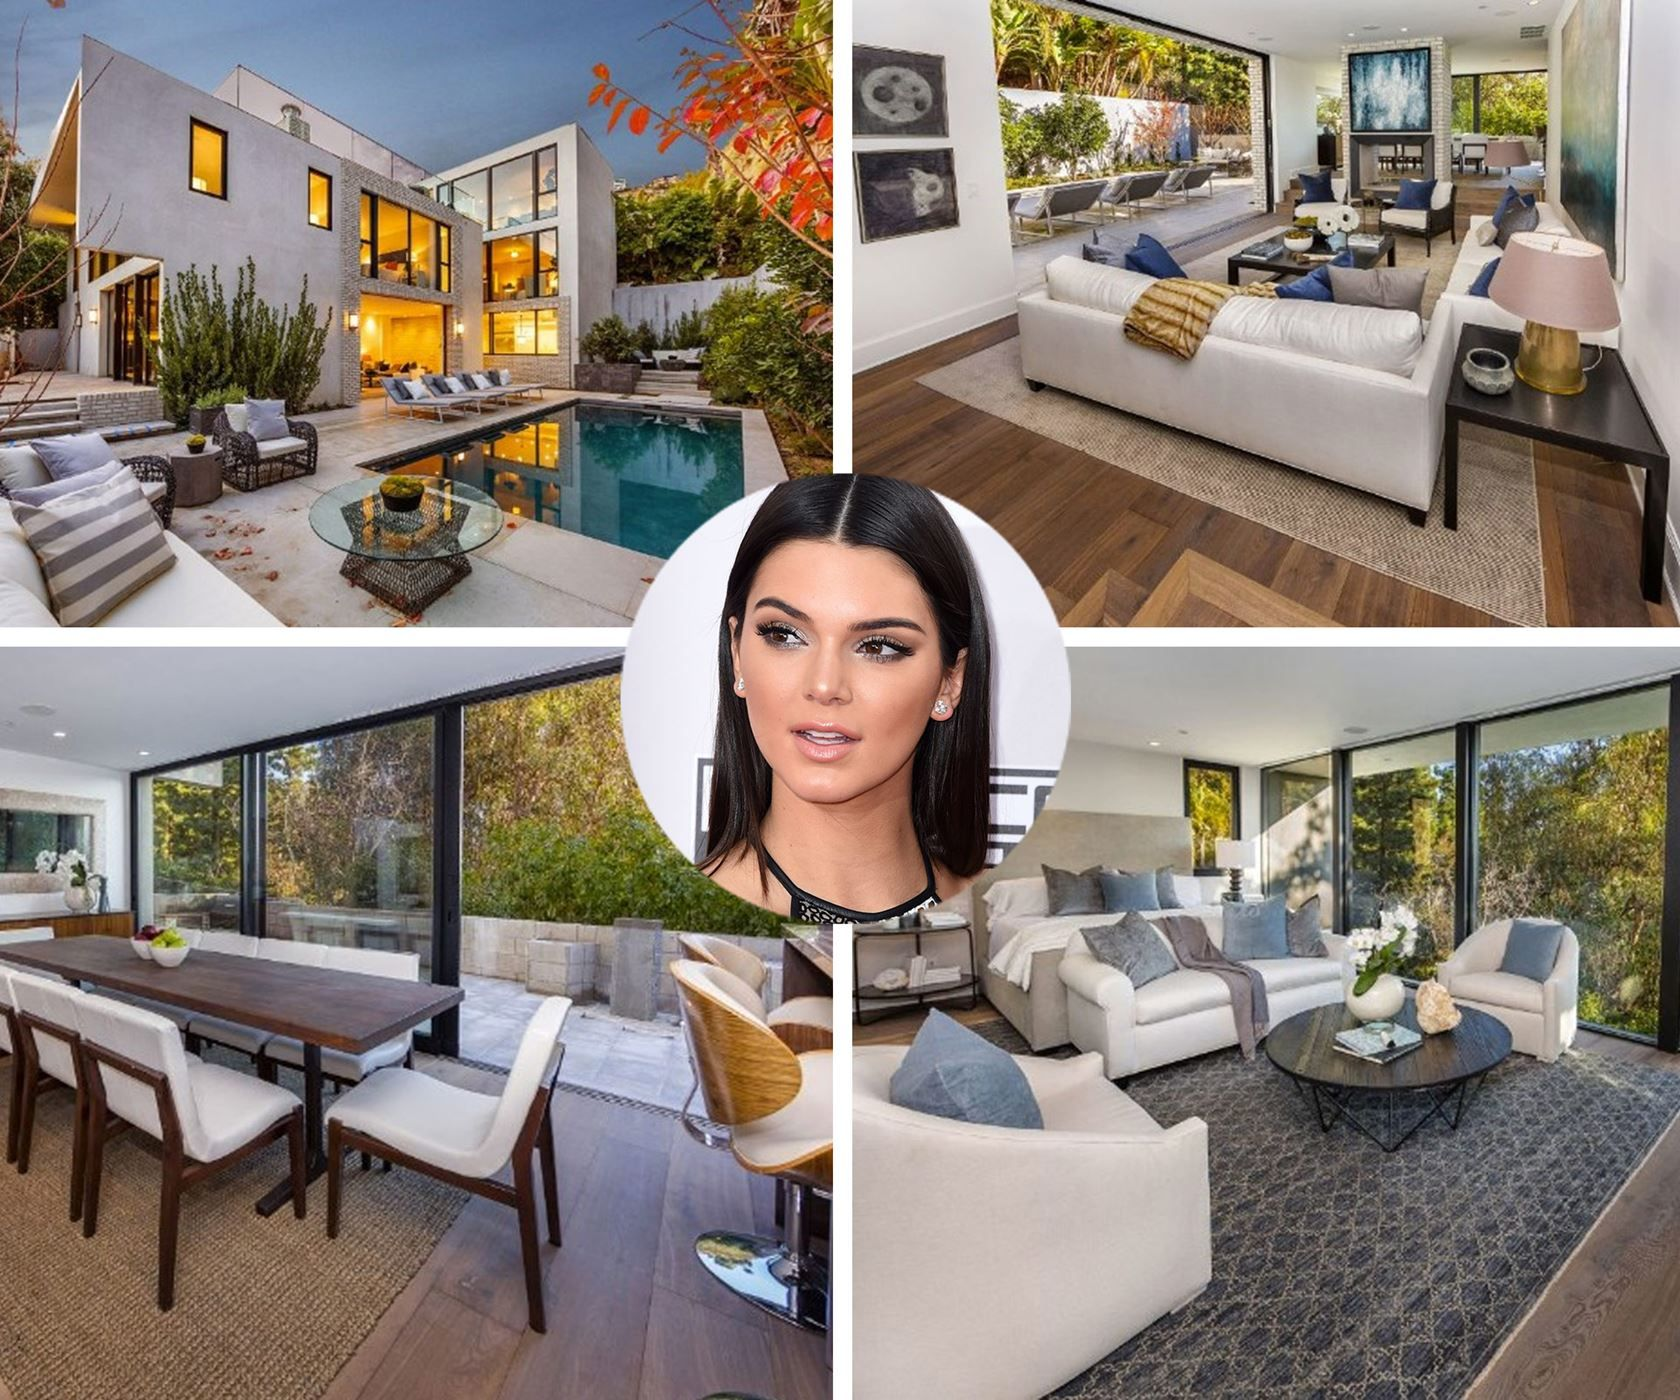 Kendall Jenner purchased John Krasinski and Emily Blunt's West Hollywood home for $6.5 million. The stunning home has six bedrooms and four-and-a-half bathrooms.